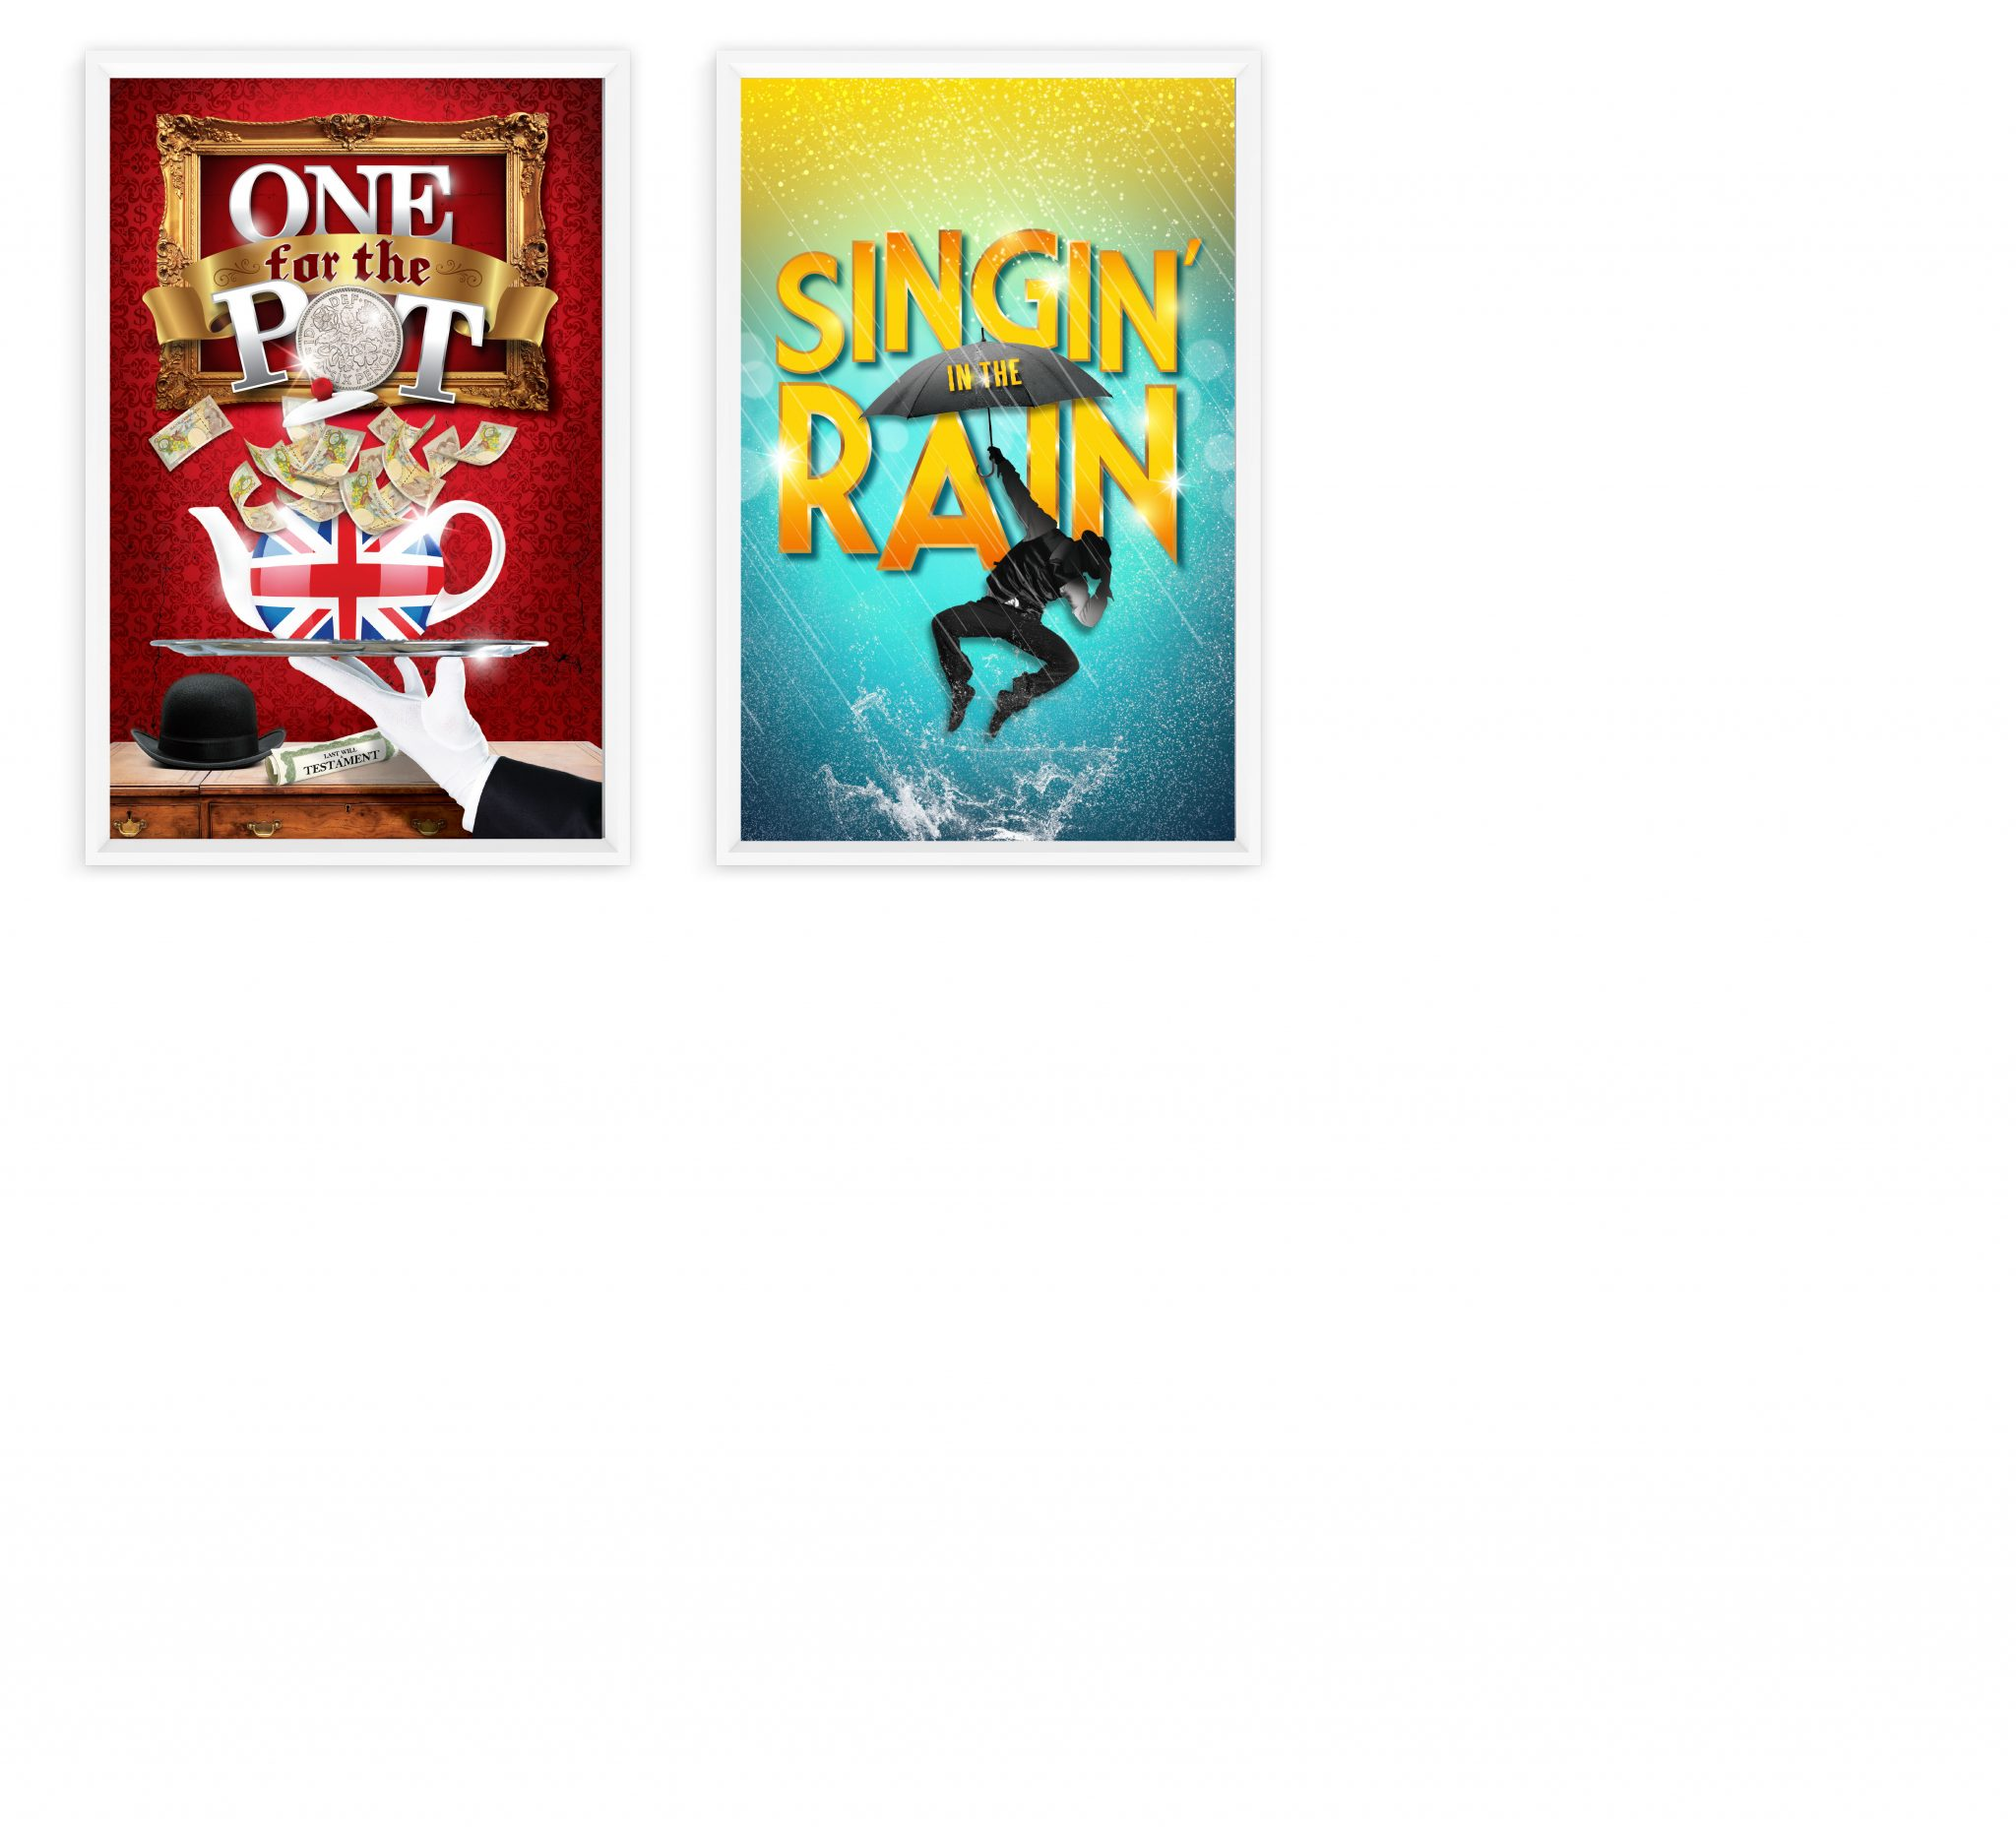 Production posters for One for the Pot and Singing in the Rain